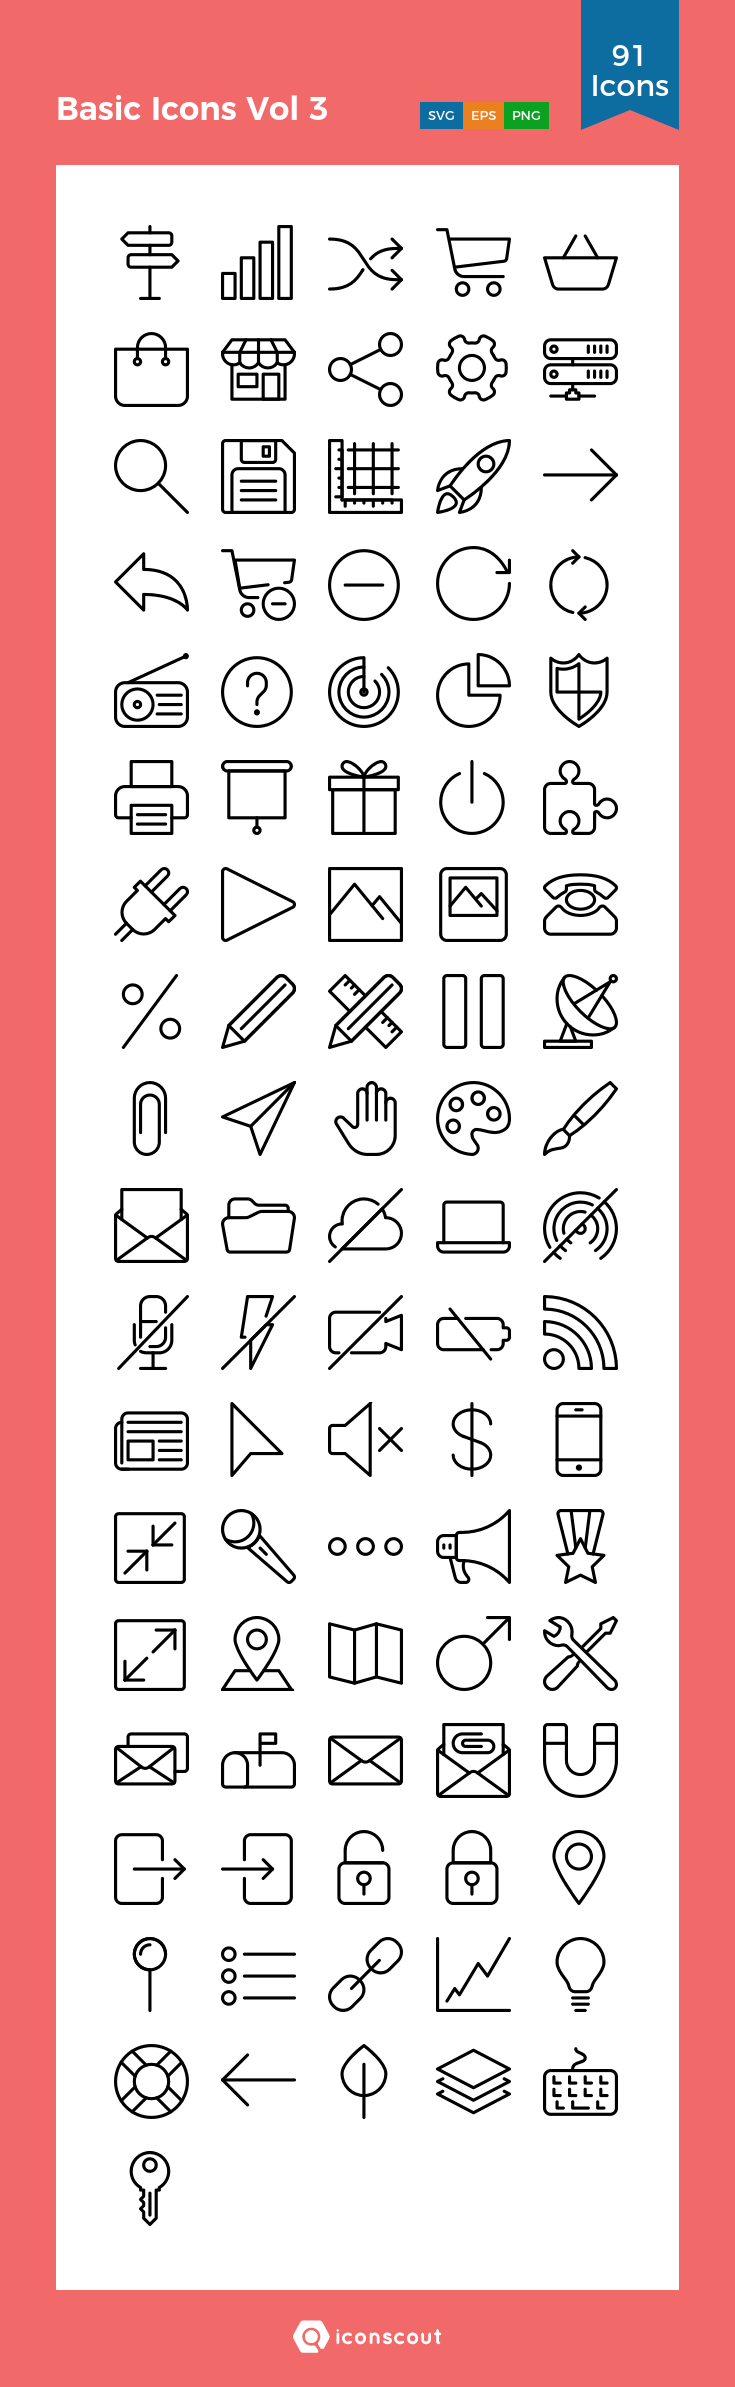 Download Basic Icons Vol 3 Icon Pack Available In Svg Png Eps Ai Icon Fonts Icon Pack Icon Icon Font